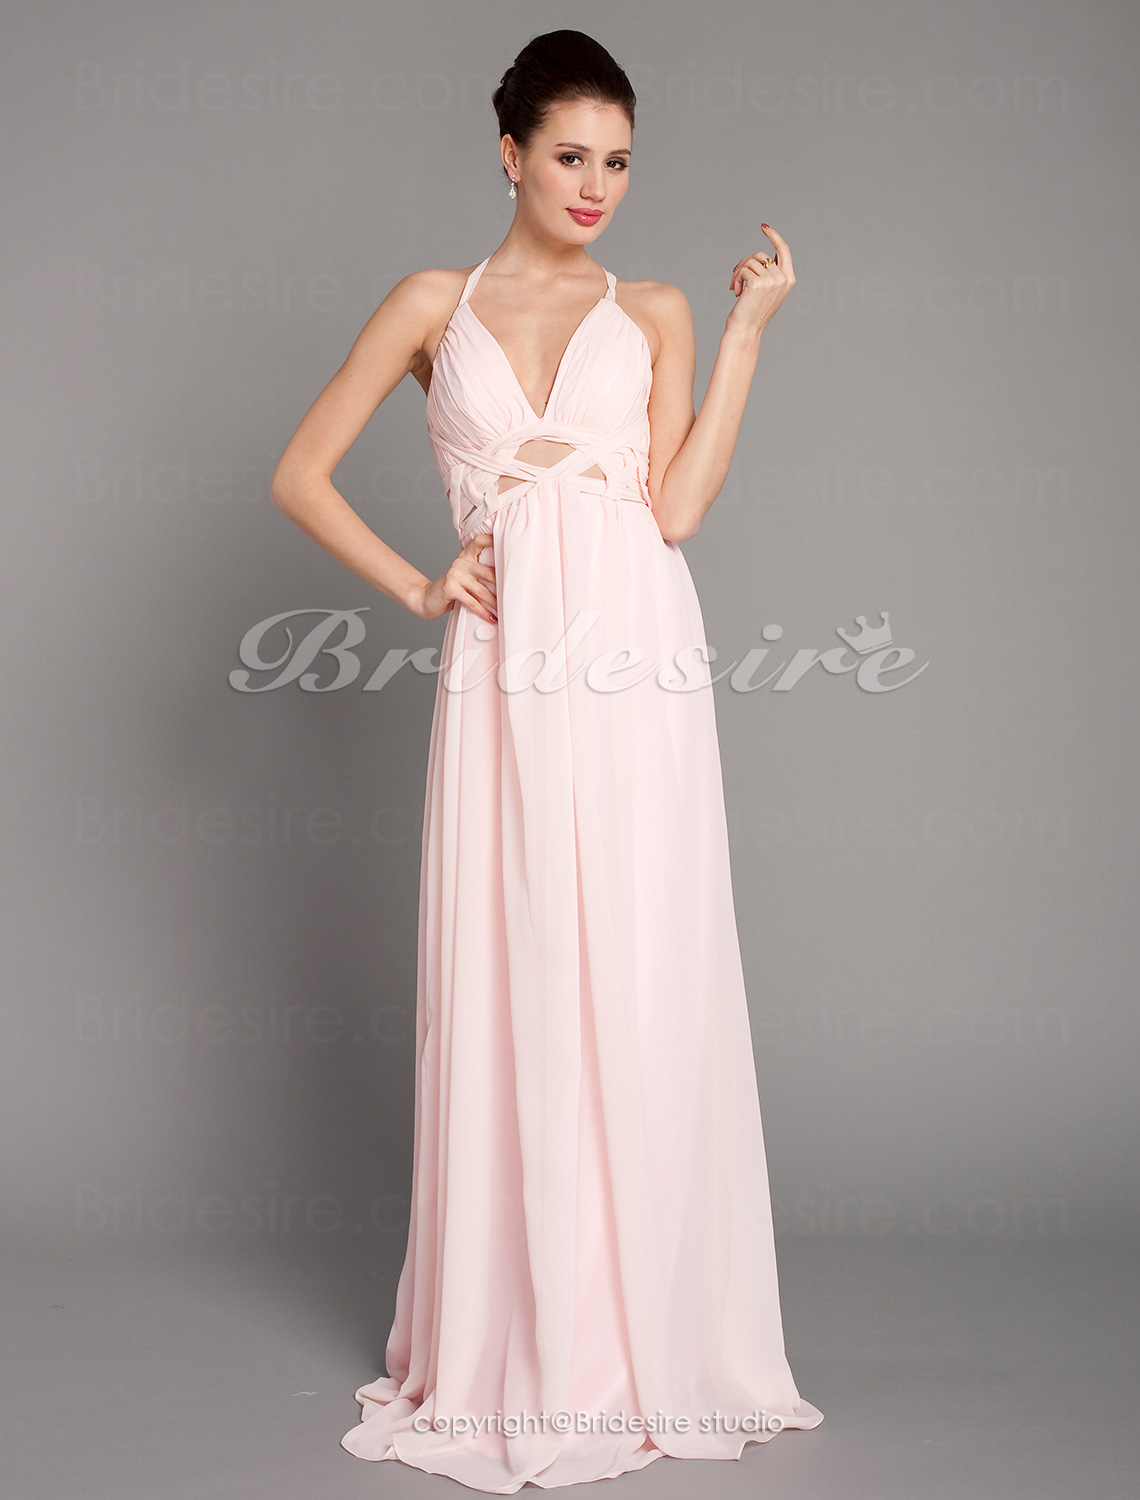 Sheath/ Column Chiffon Floor-length V-neck Evening Dress inspired by Elisabetta Canalis at Golden Globe